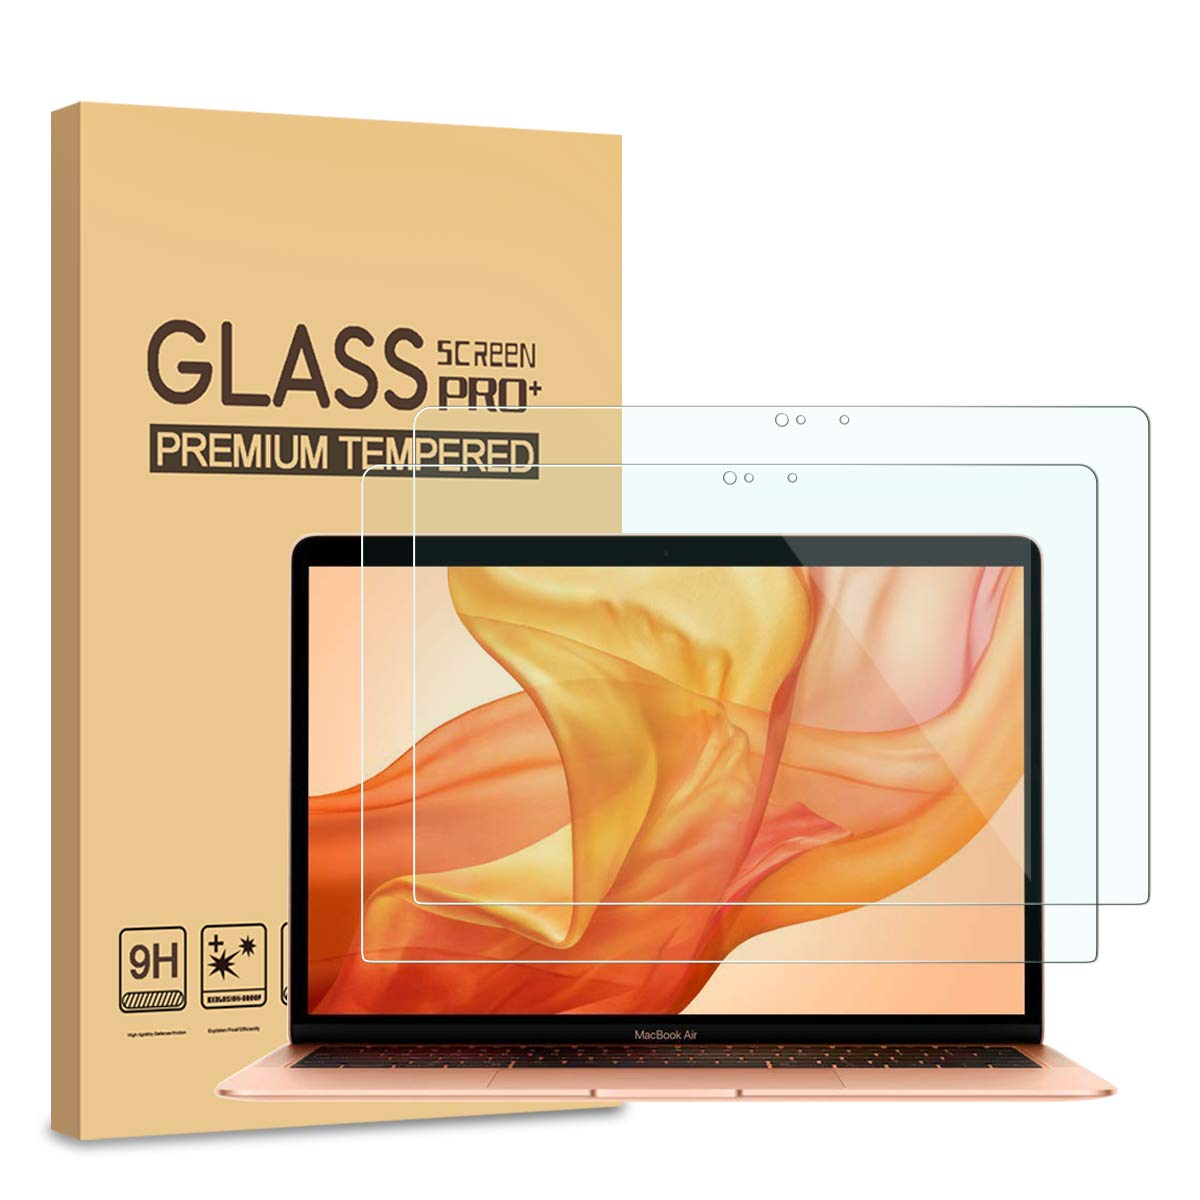 [2-Pack] Pulen Tempered Glass HD Bubble Free 9H Hardness Screen Protector for Apple MacBook Air 13.3-Inch Retina Display 2018 (A1932 Model) by PULEN